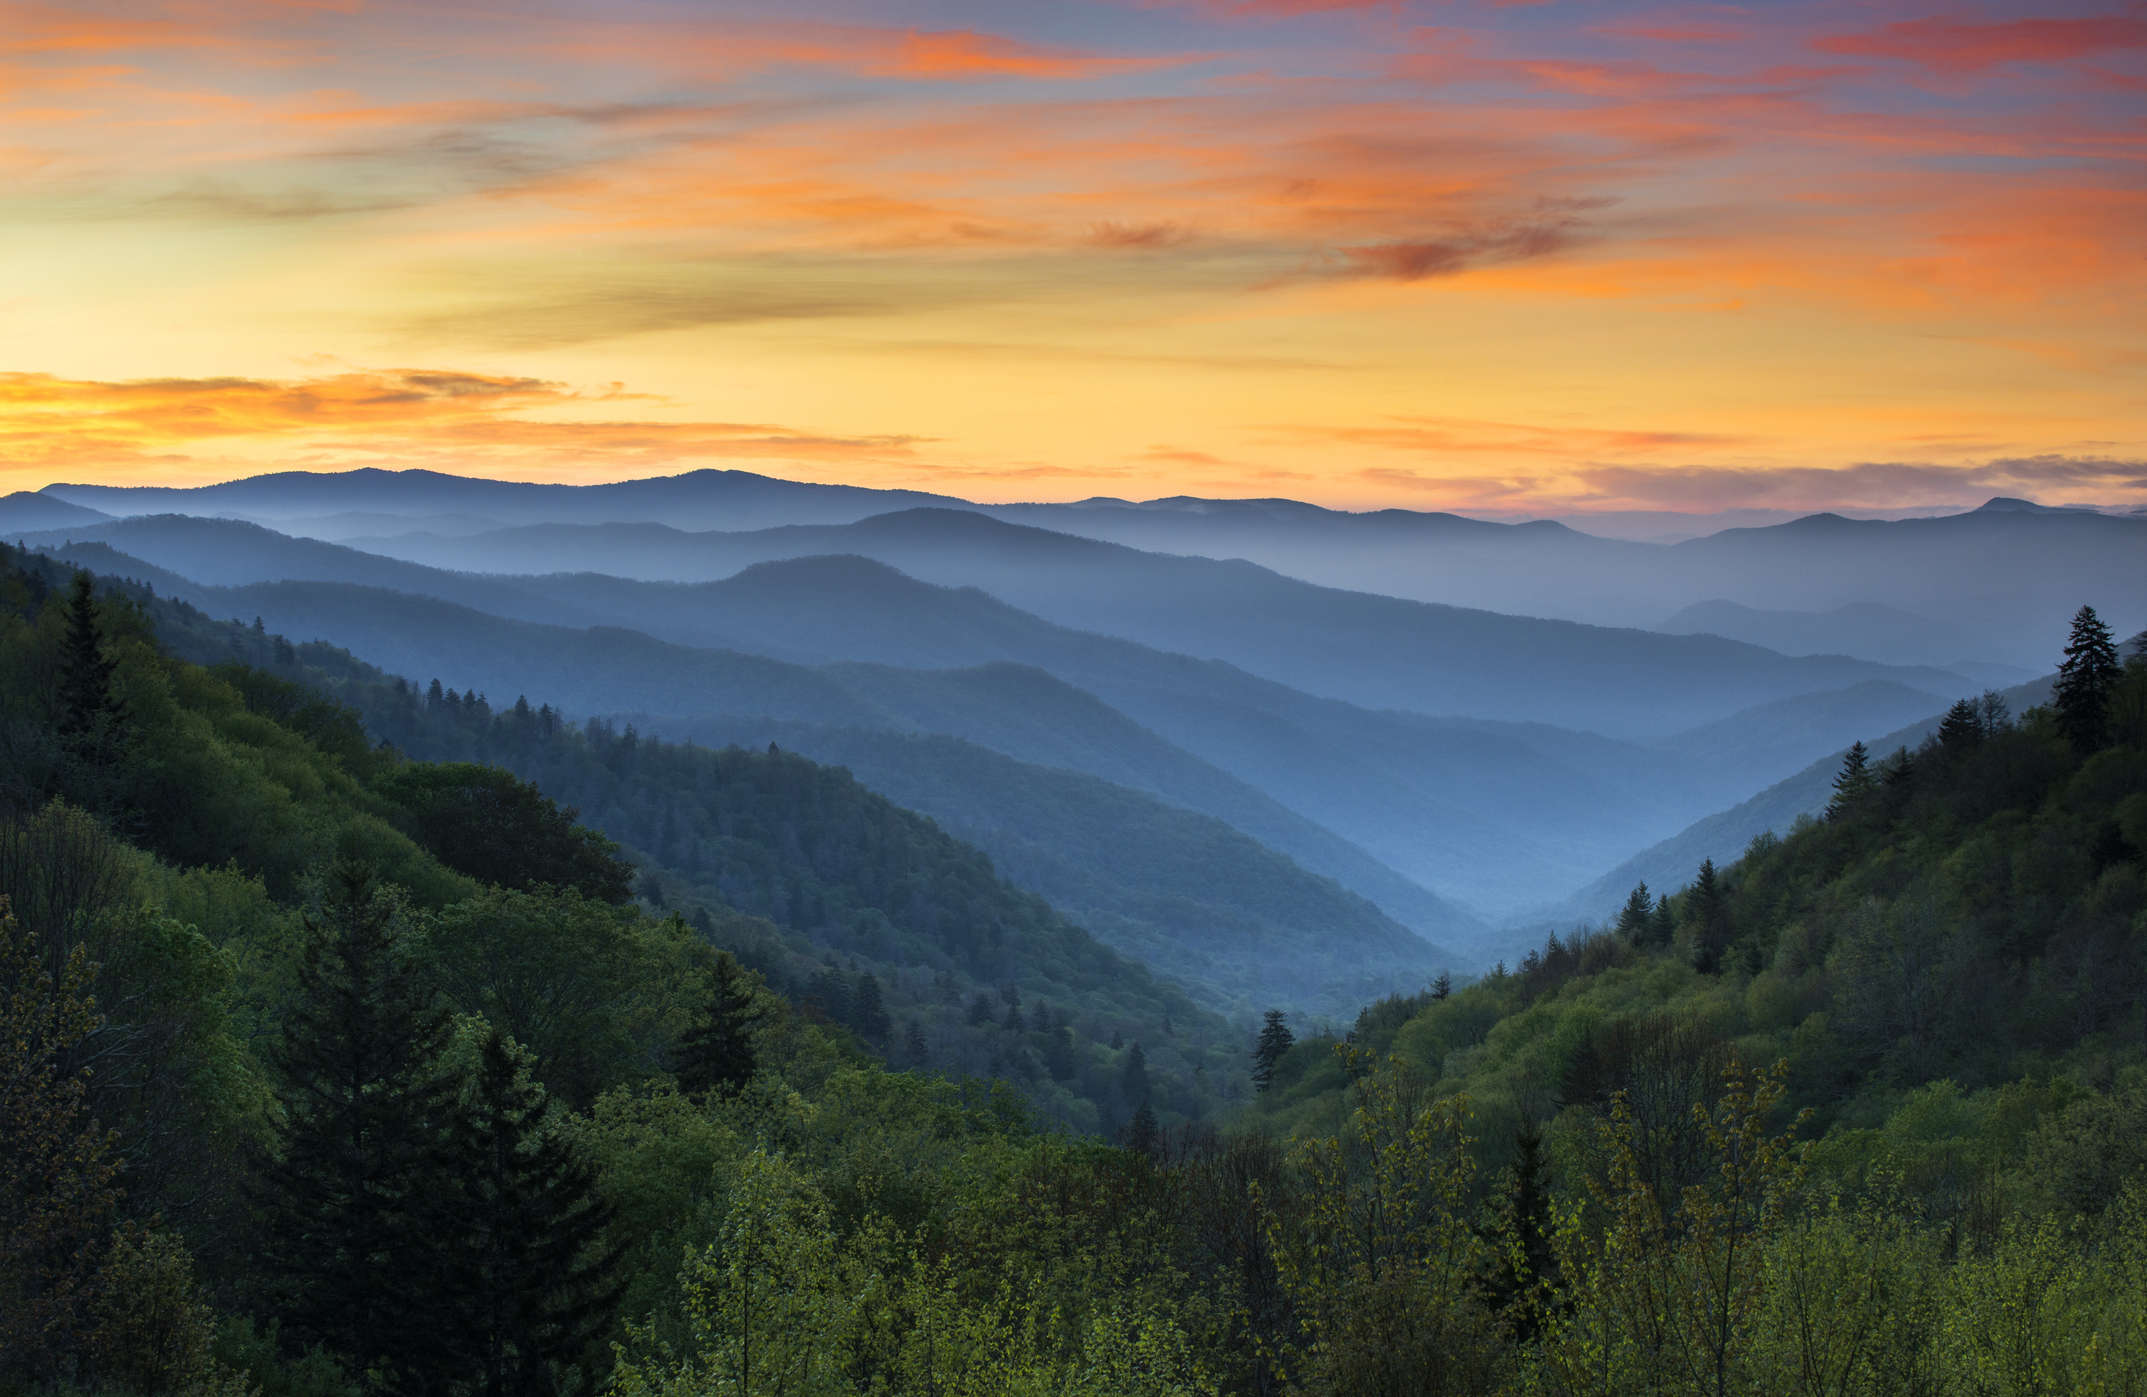 Go on a virtual hike of the Appalachian trail